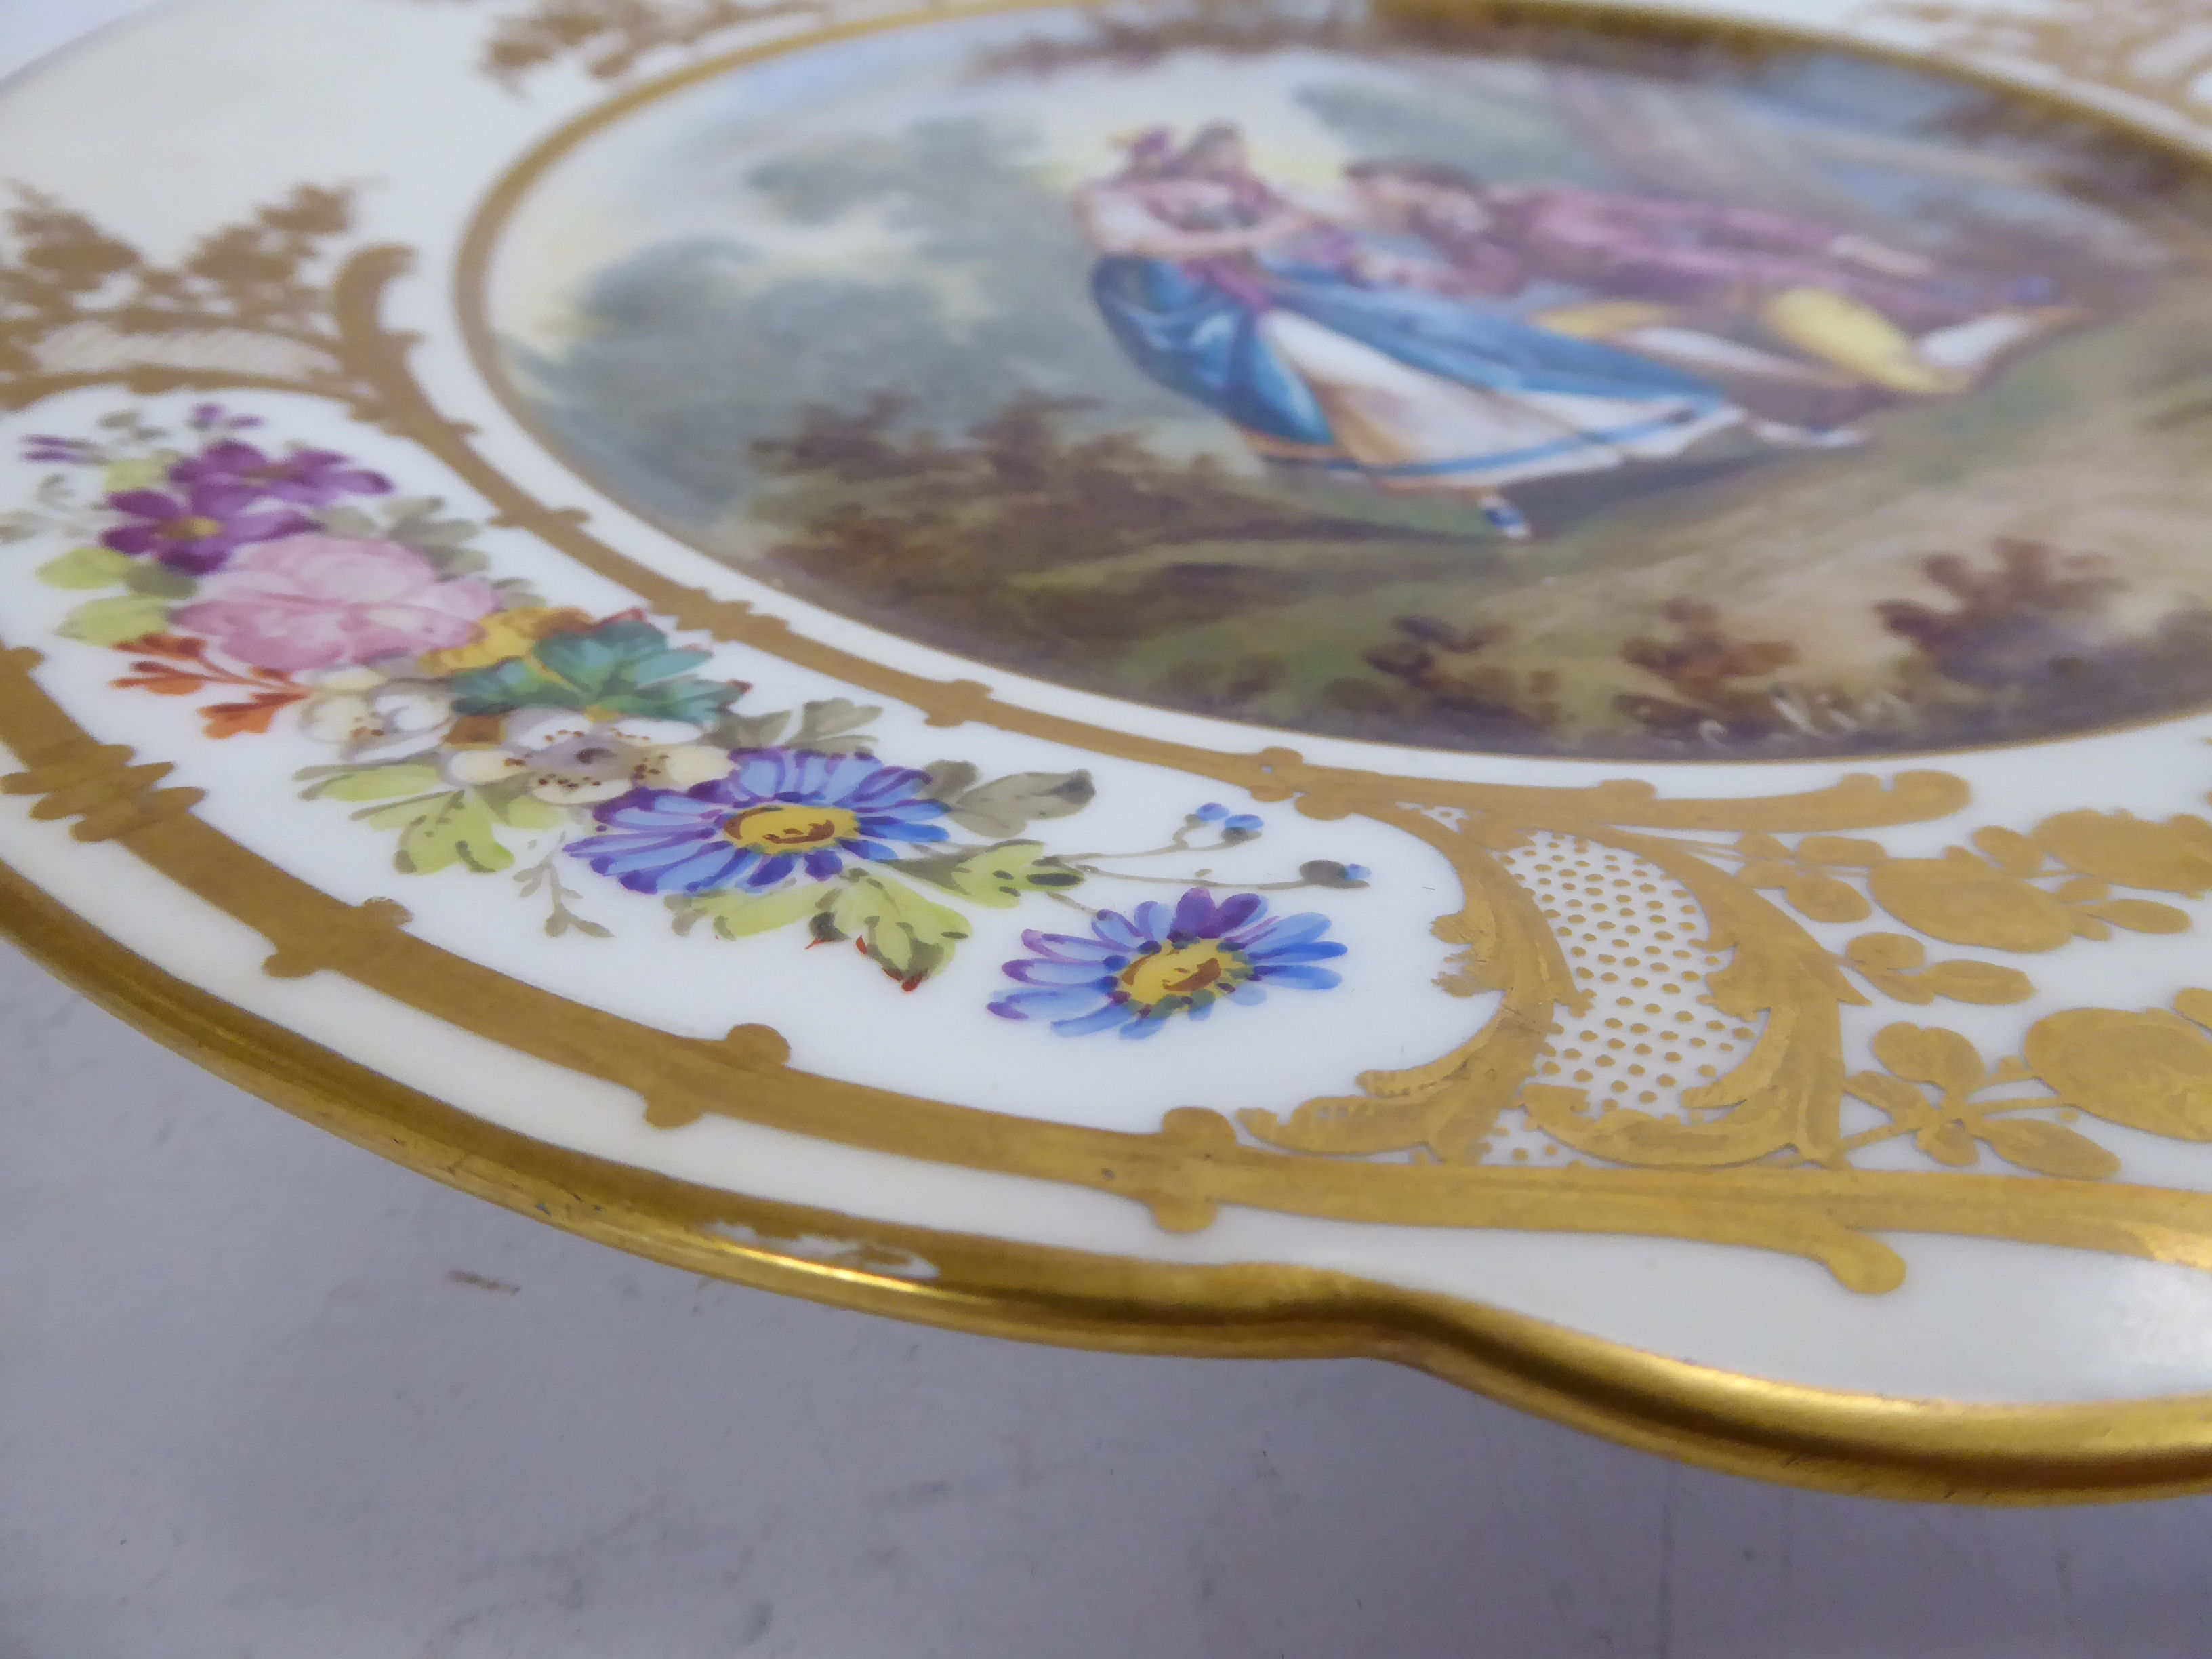 Lot 6 - A mid 19thC Sevres porcelain wavy edged plate, featuring a romantic scene,